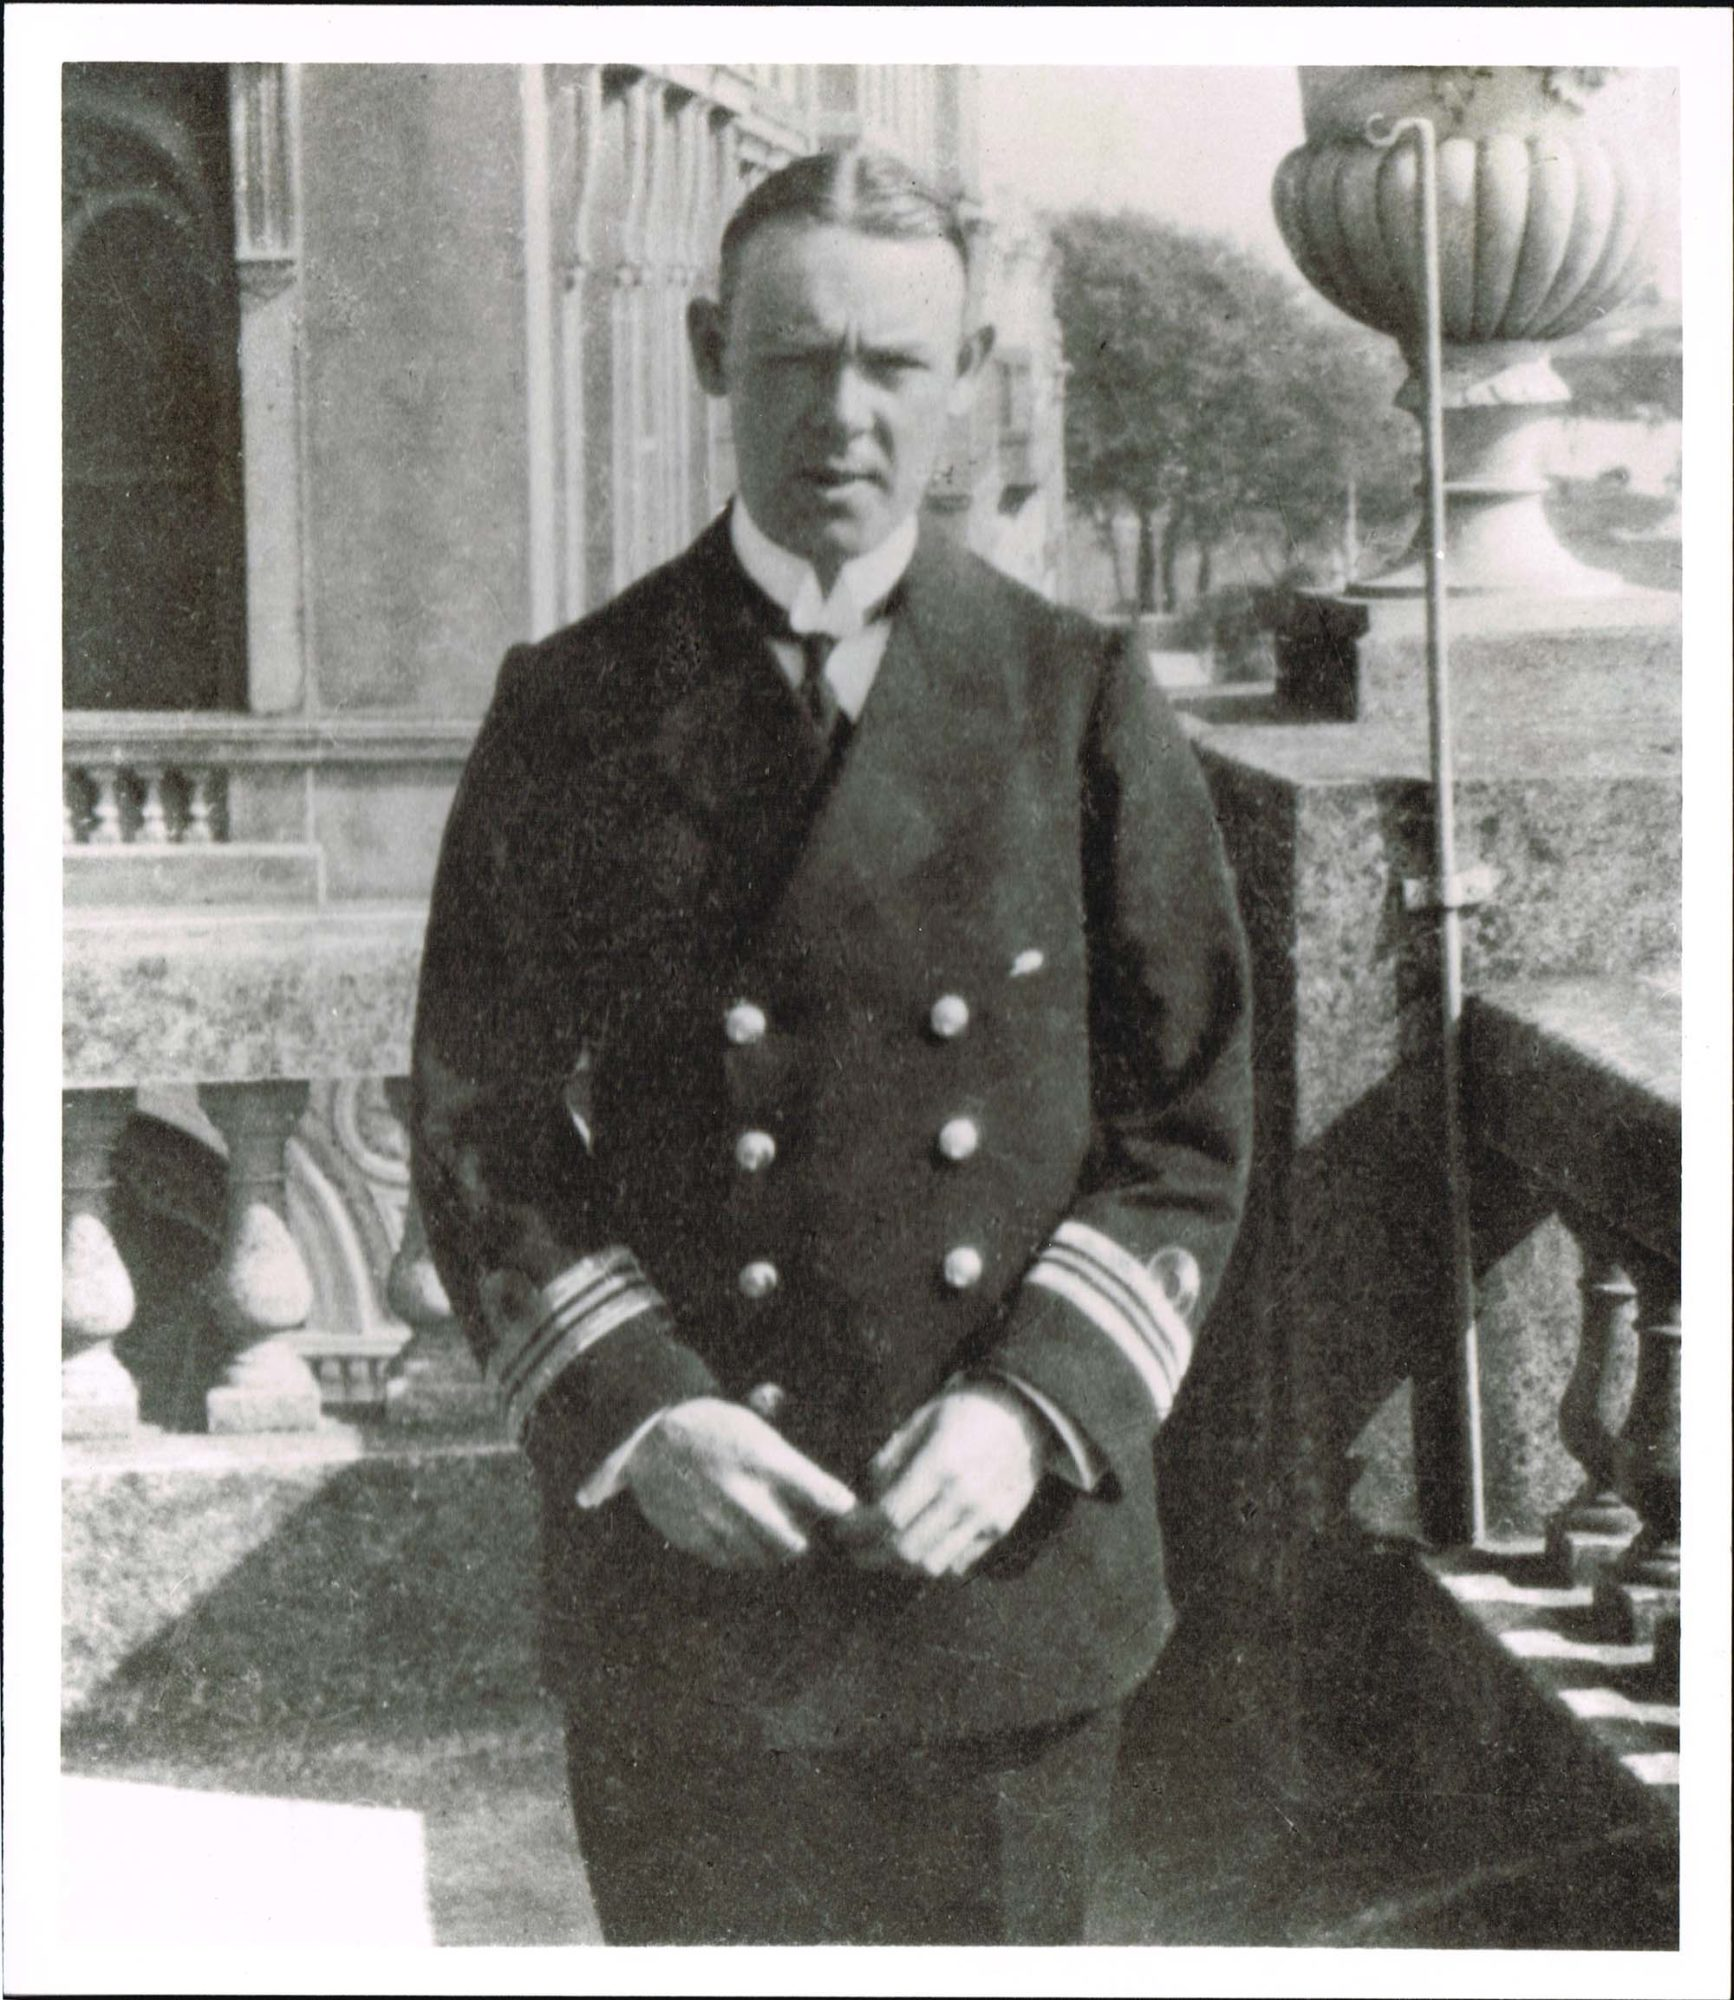 Black and white photograph of Lieutentant Commander August Cayzer when recalled to the Royal Navy in 1914